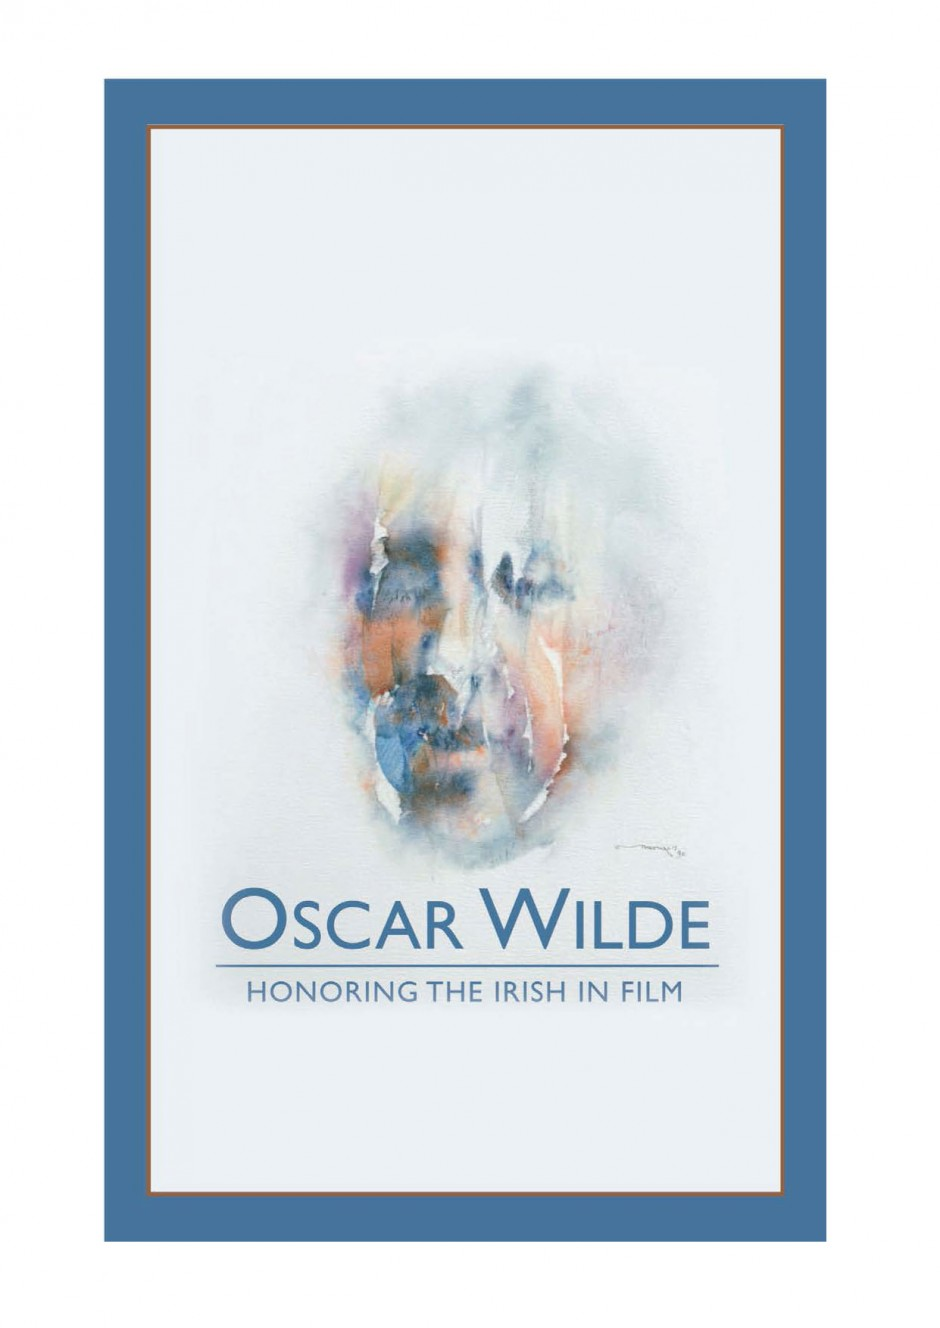 OSCAR WILDE MAIN PROGRAM